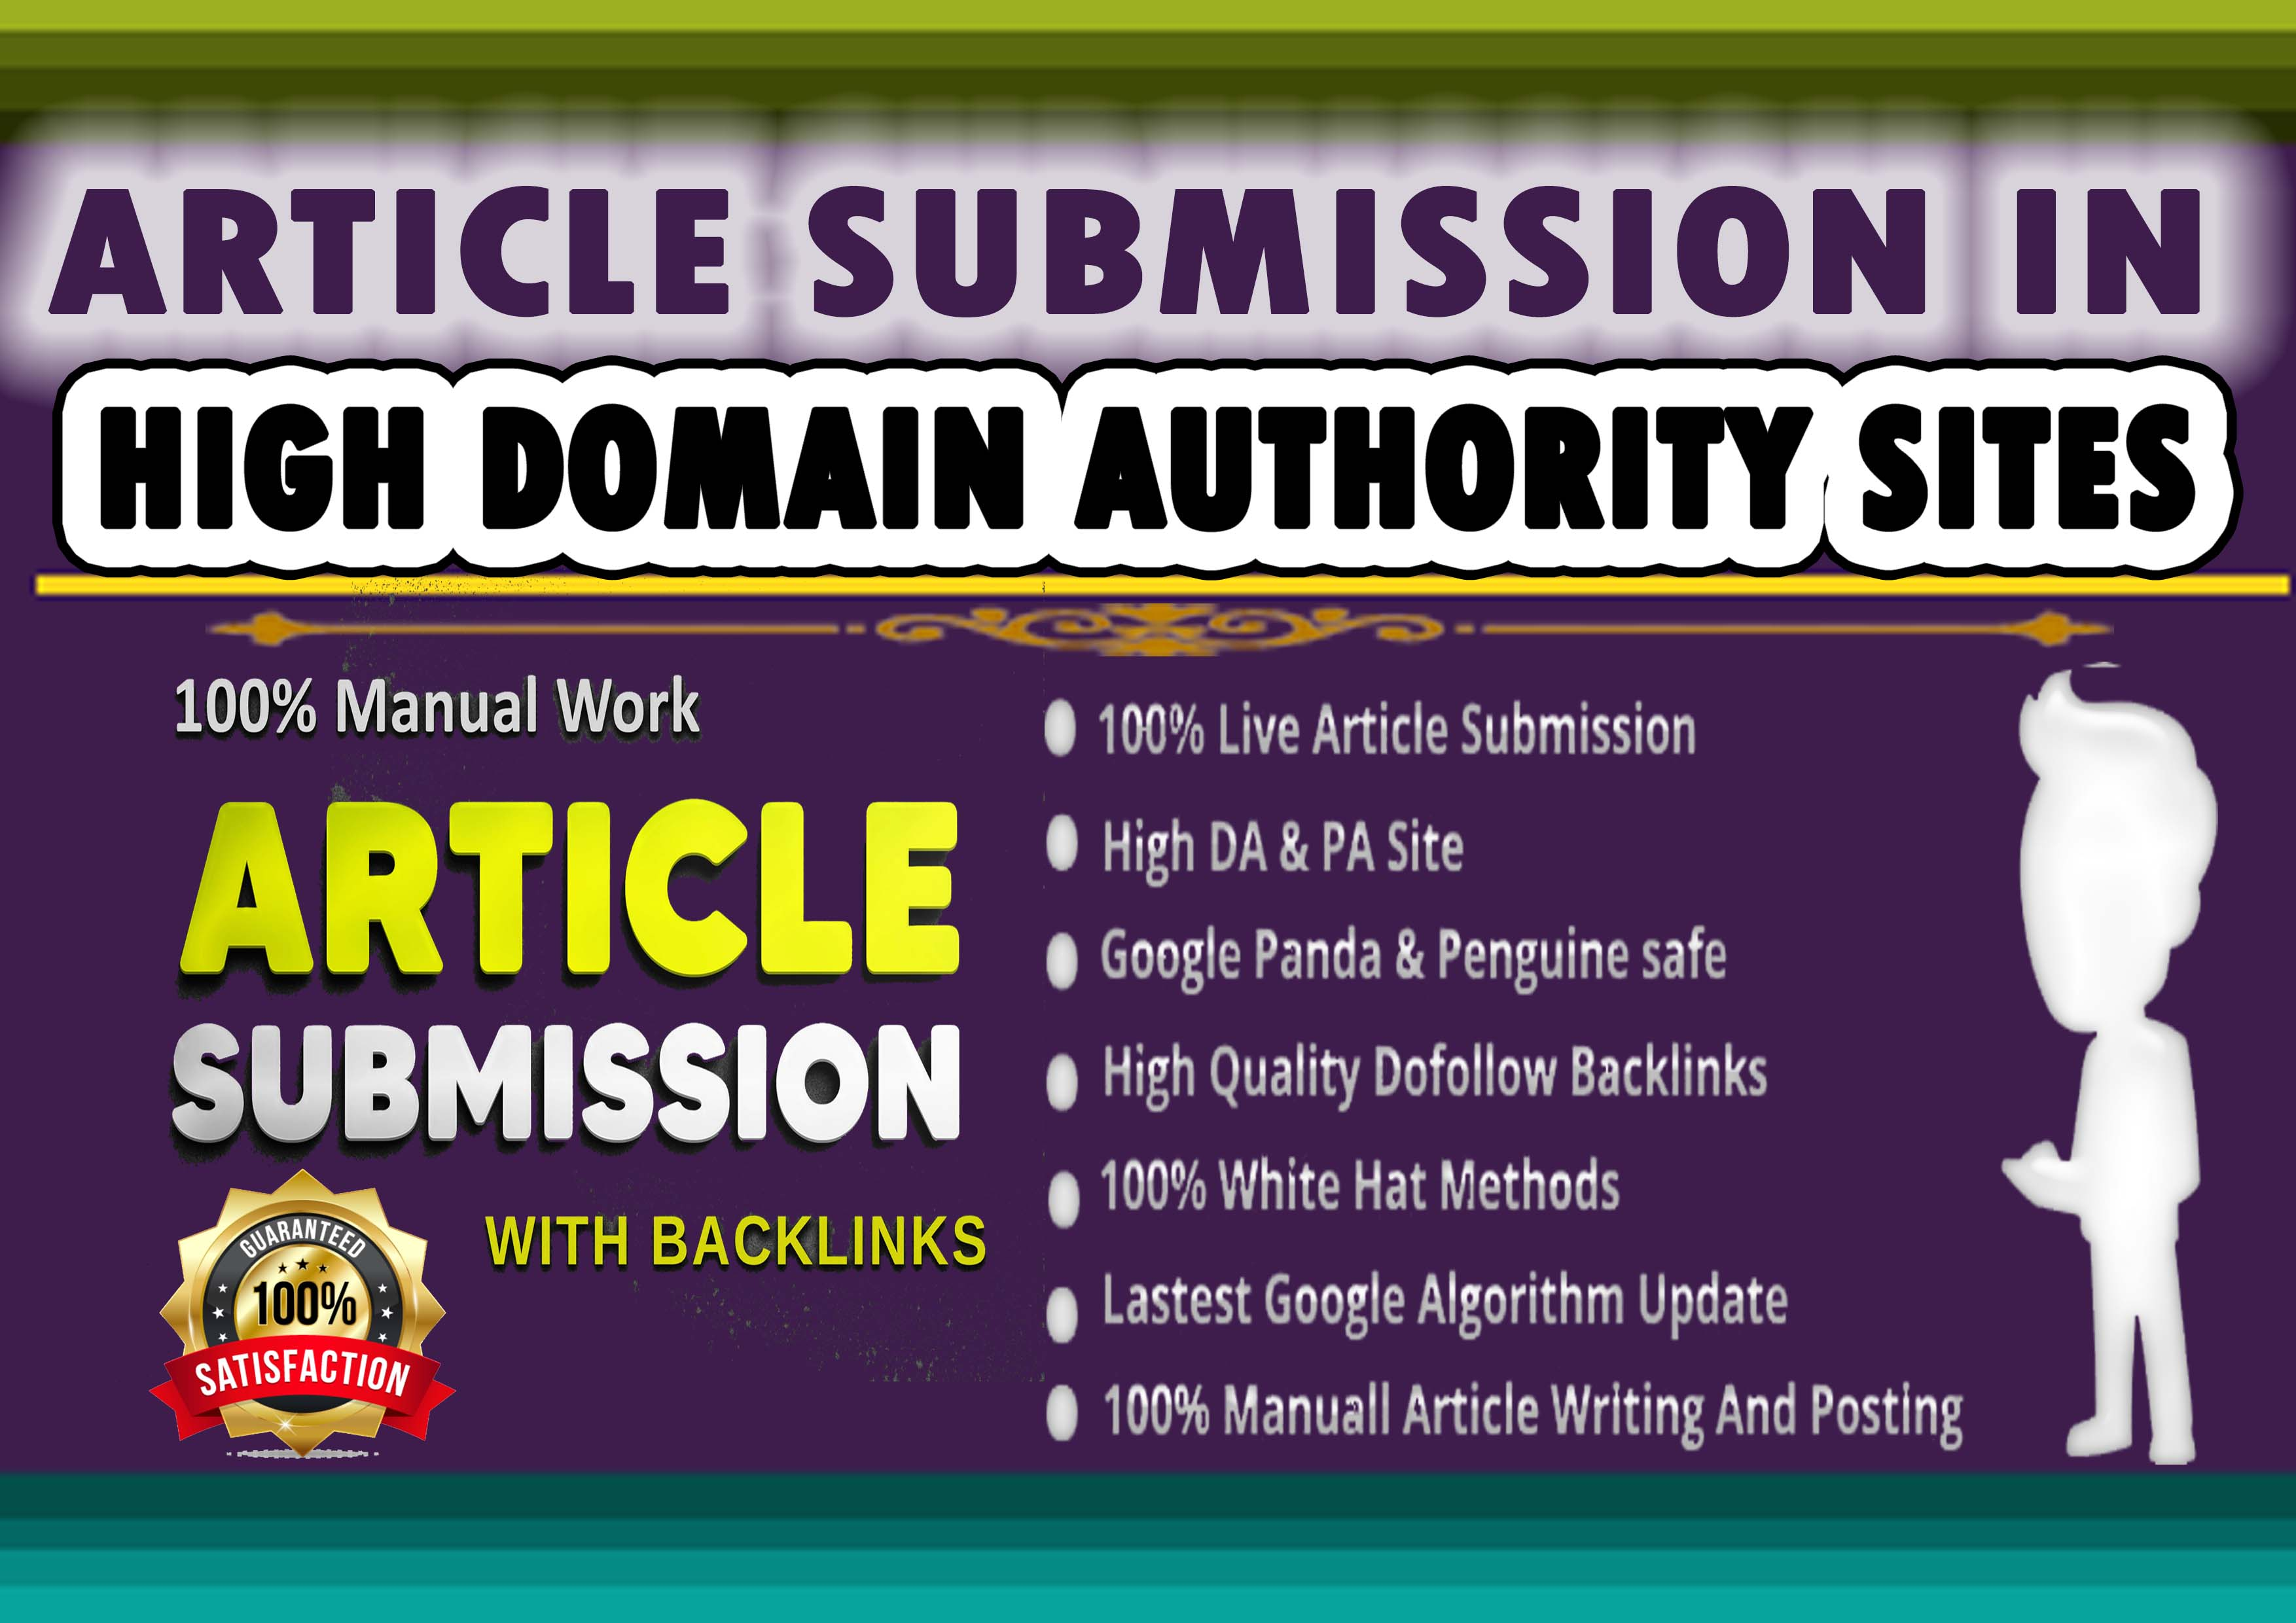 I Will Manually Submit Article 50 HQ Article Submission Website & Approved Link Report In 24 h